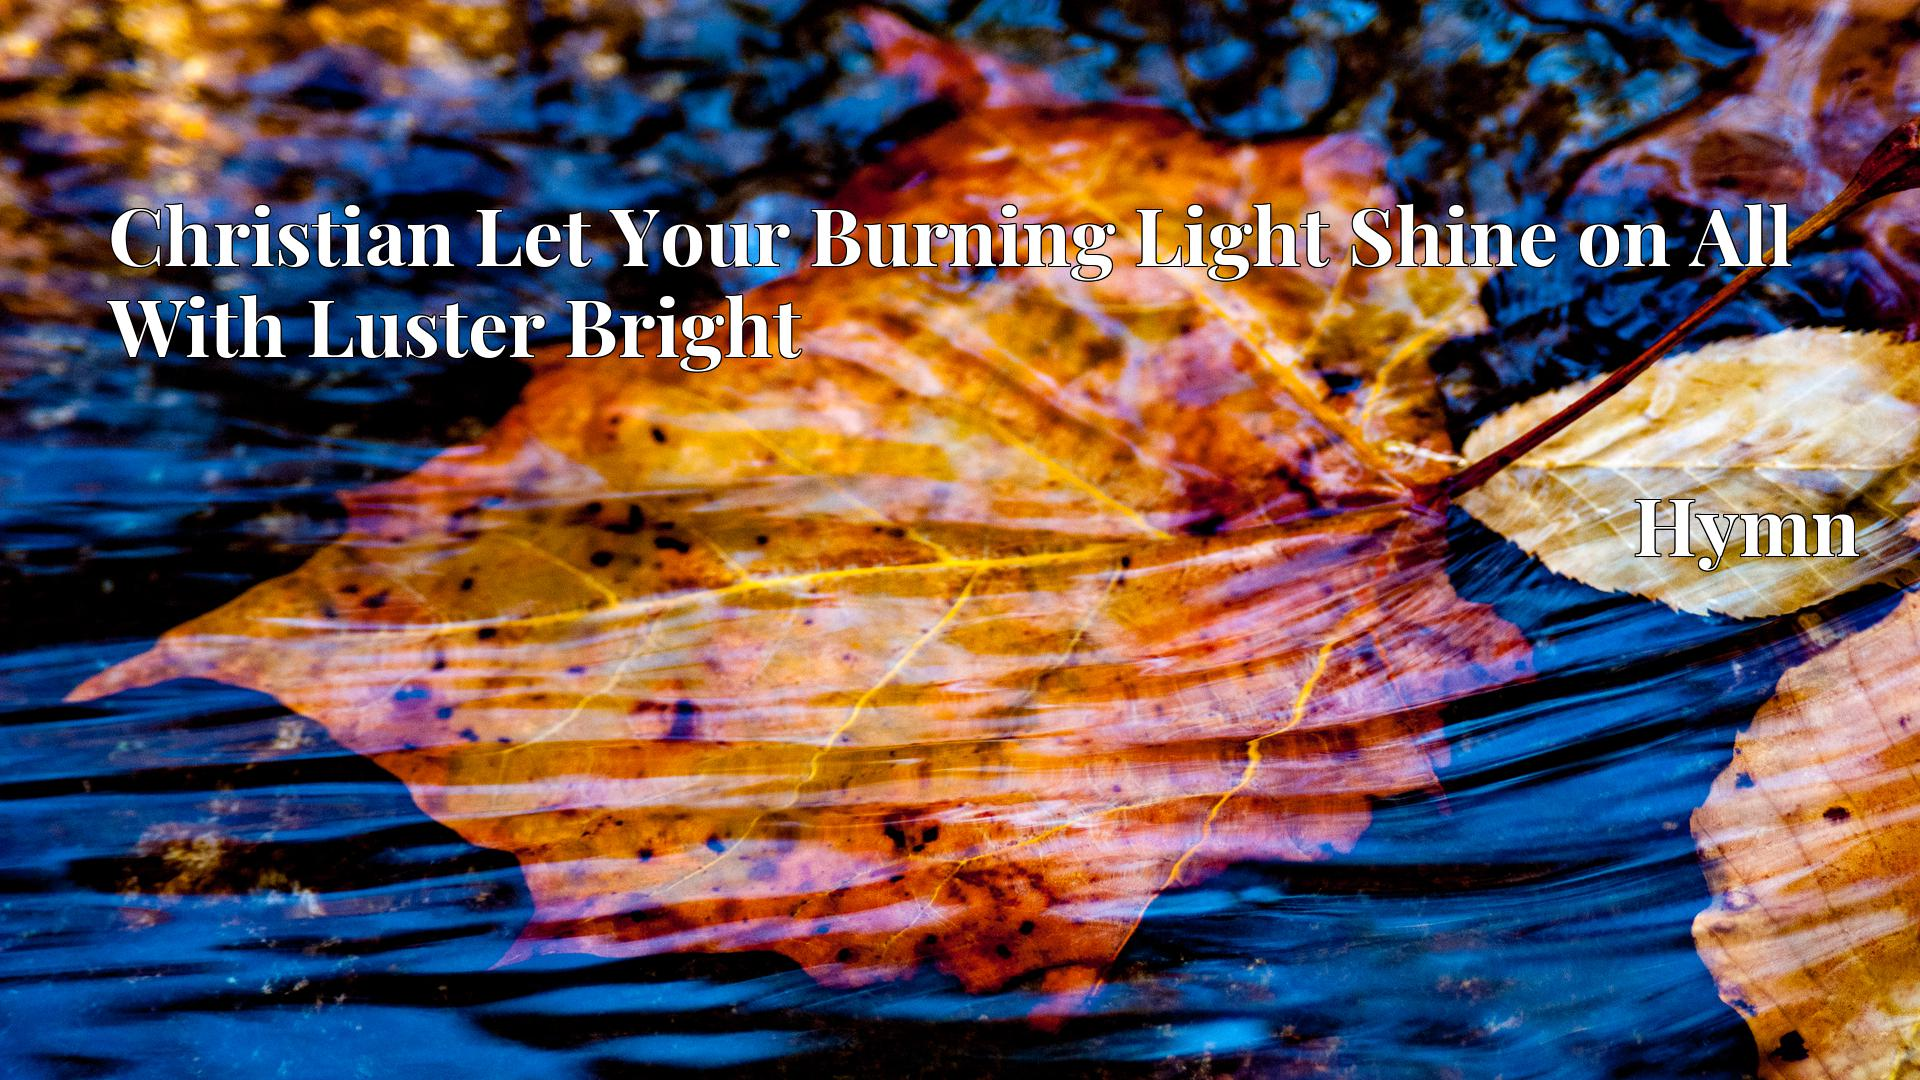 Christian Let Your Burning Light Shine on All With Luster Bright - Hymn